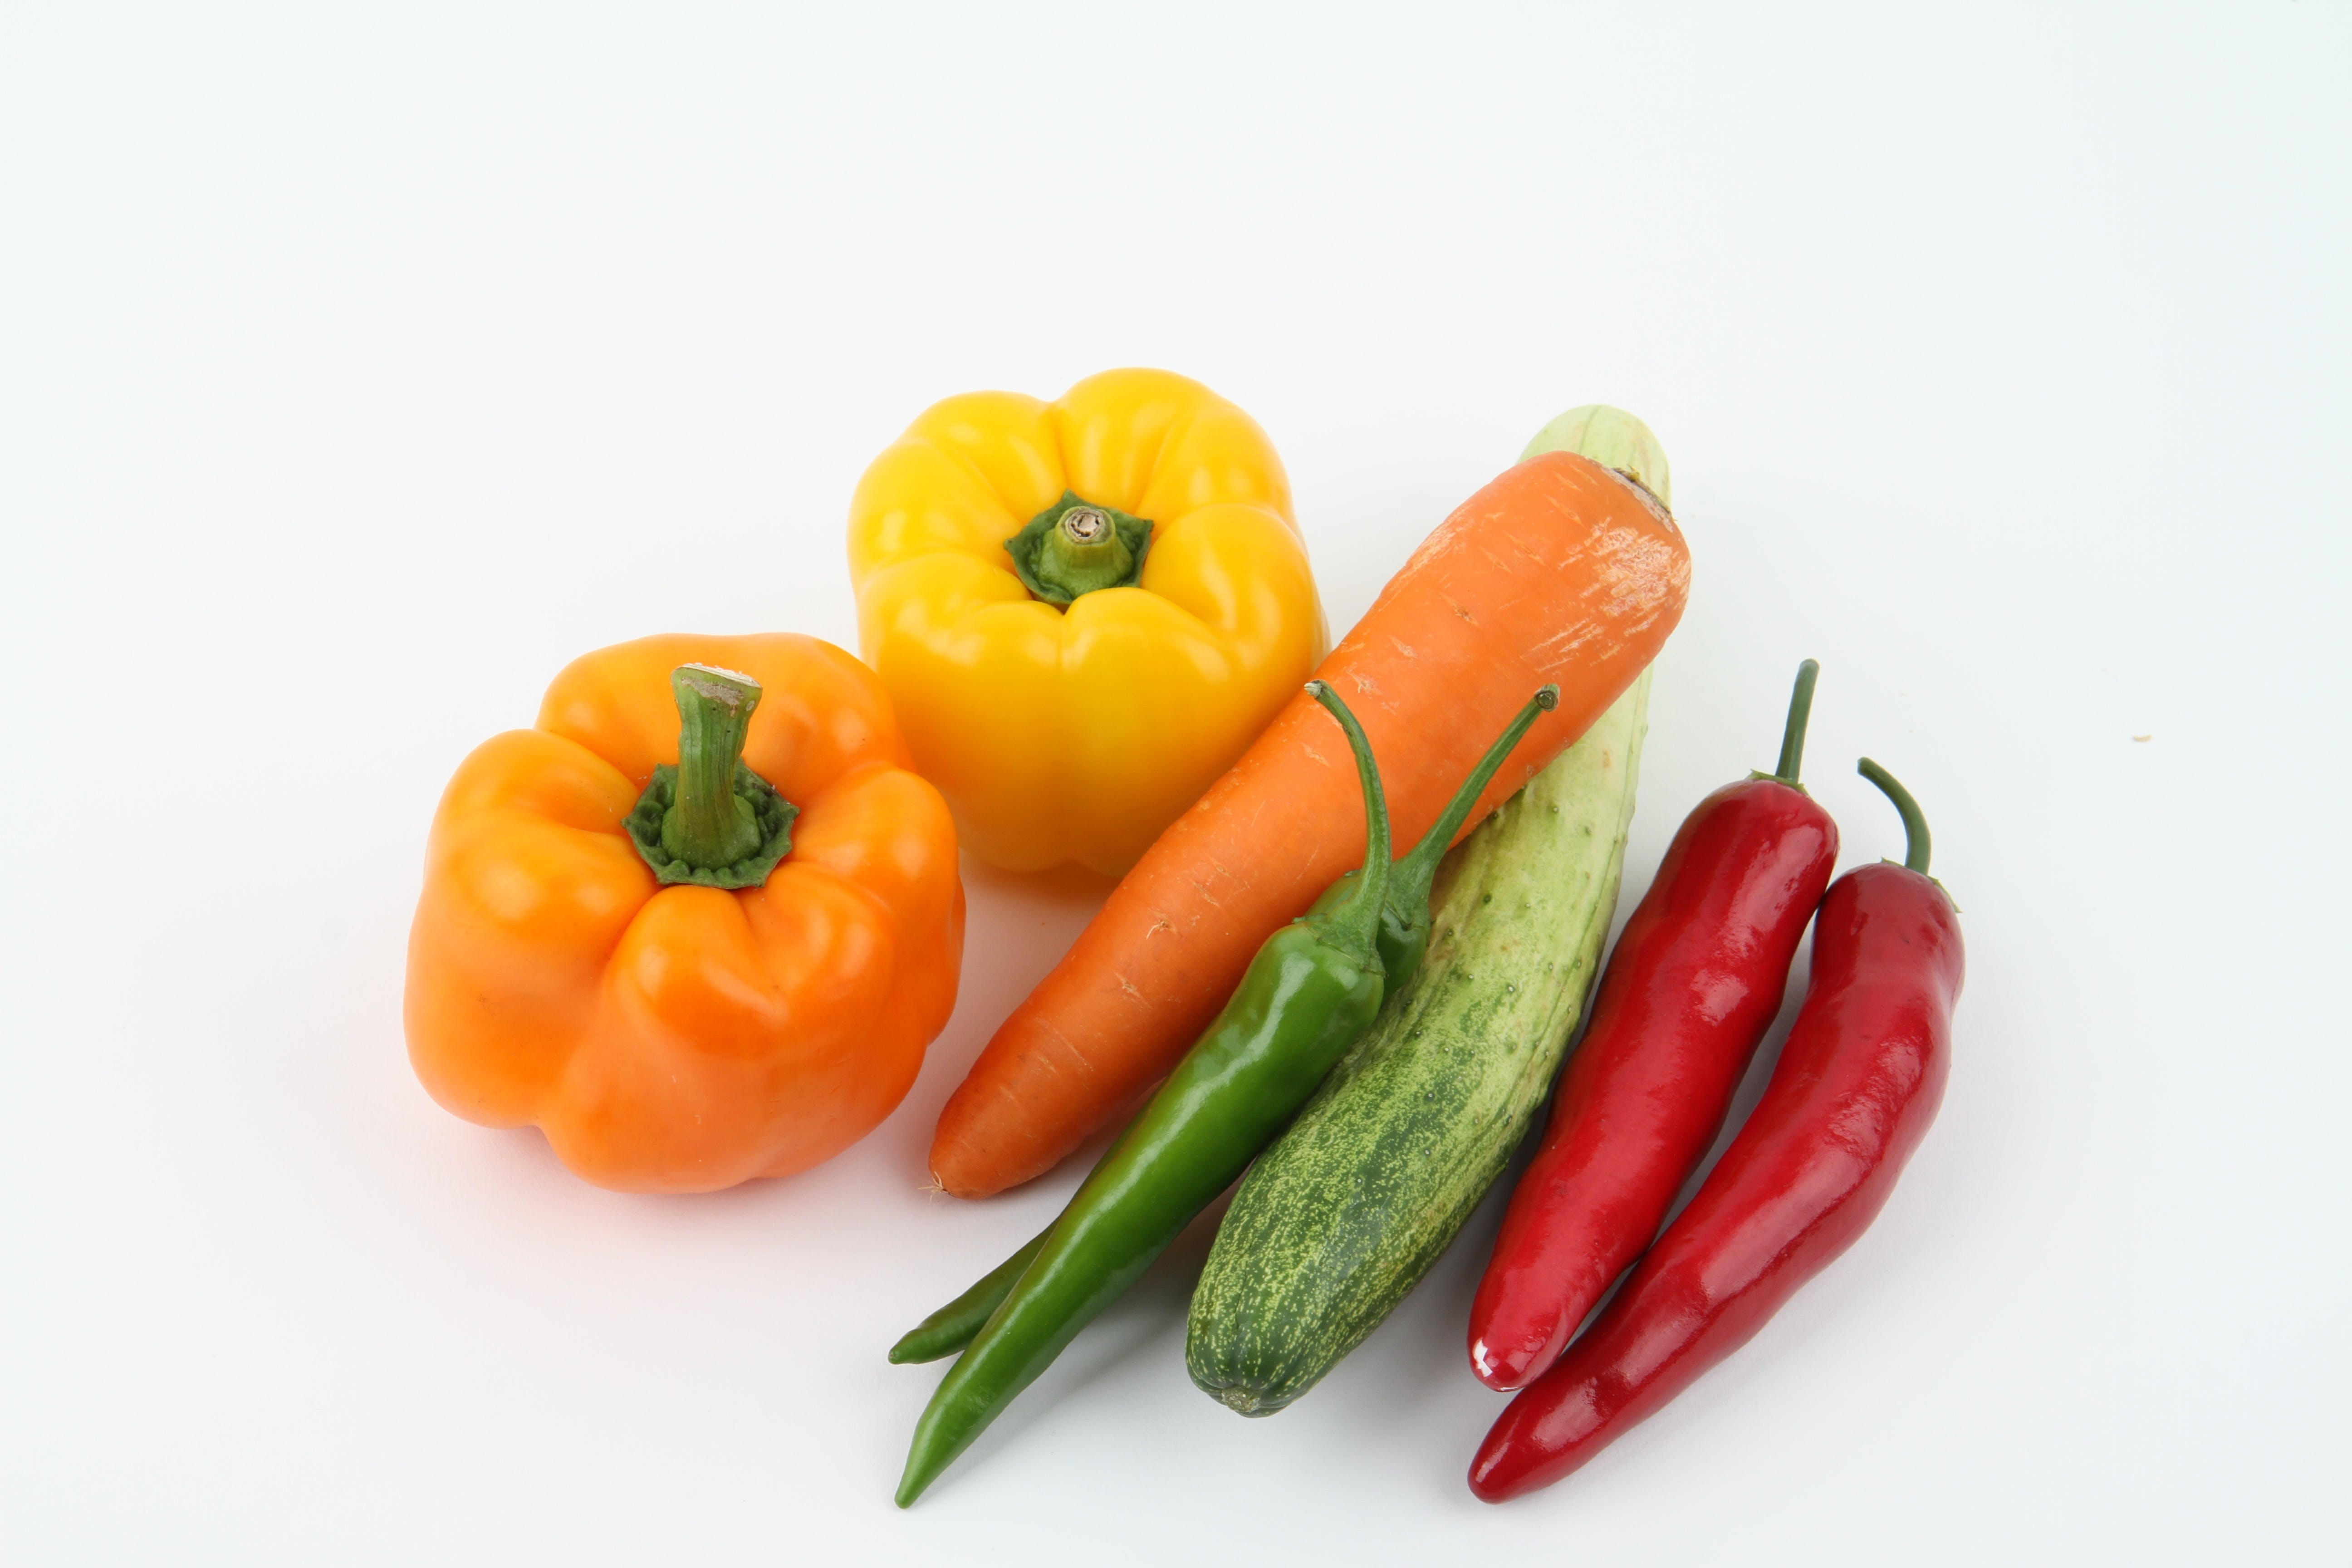 Free stock photo of food, vegetables, agriculture, peppers